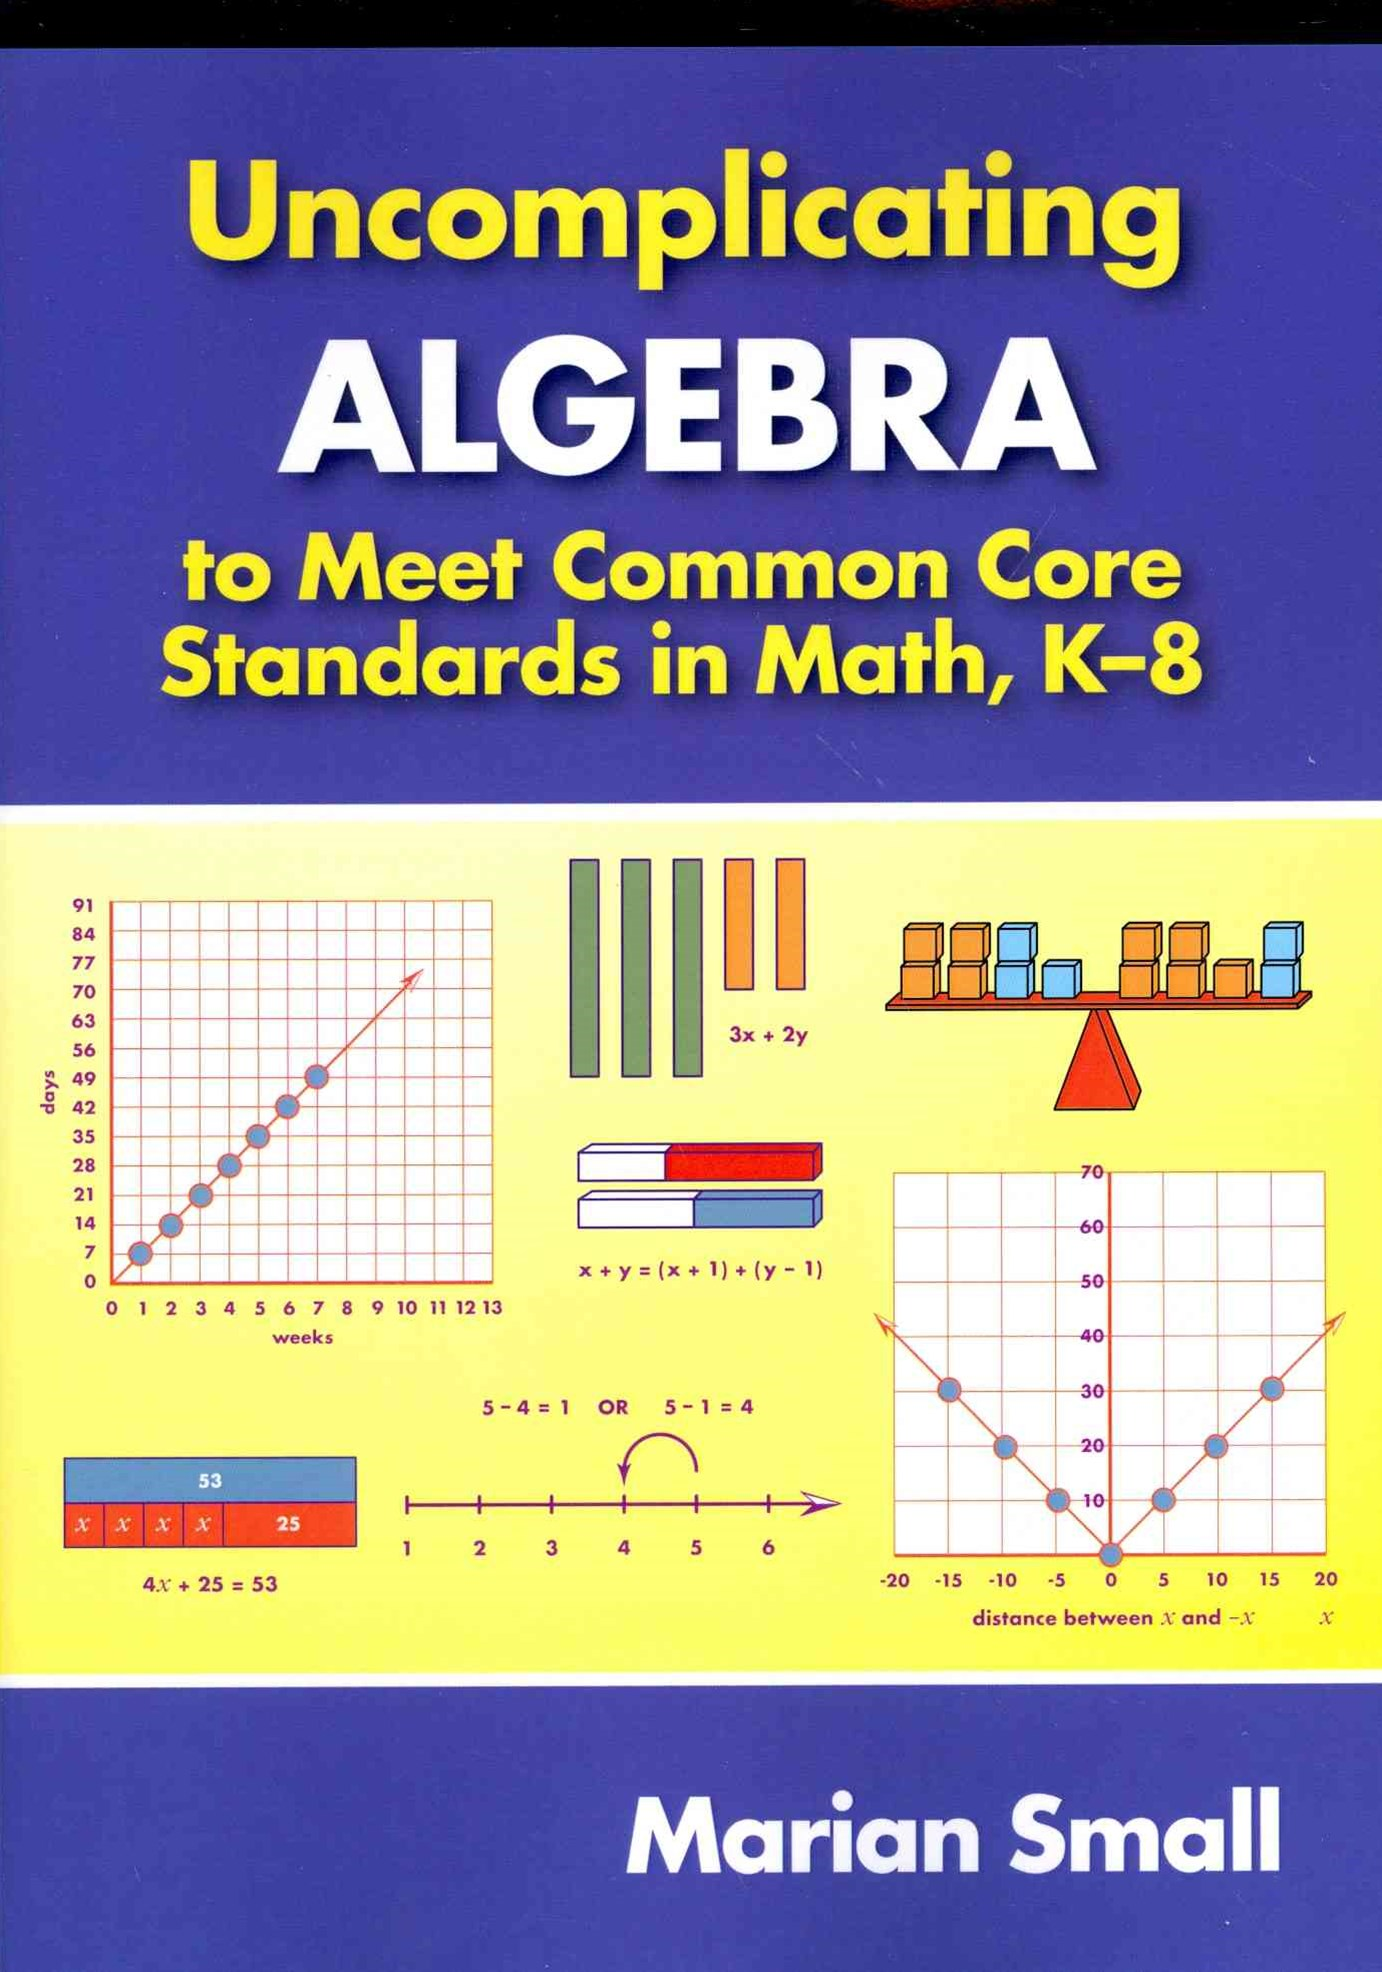 Uncomplicating Algebra to Meet Common Core Standards in Math, K-8